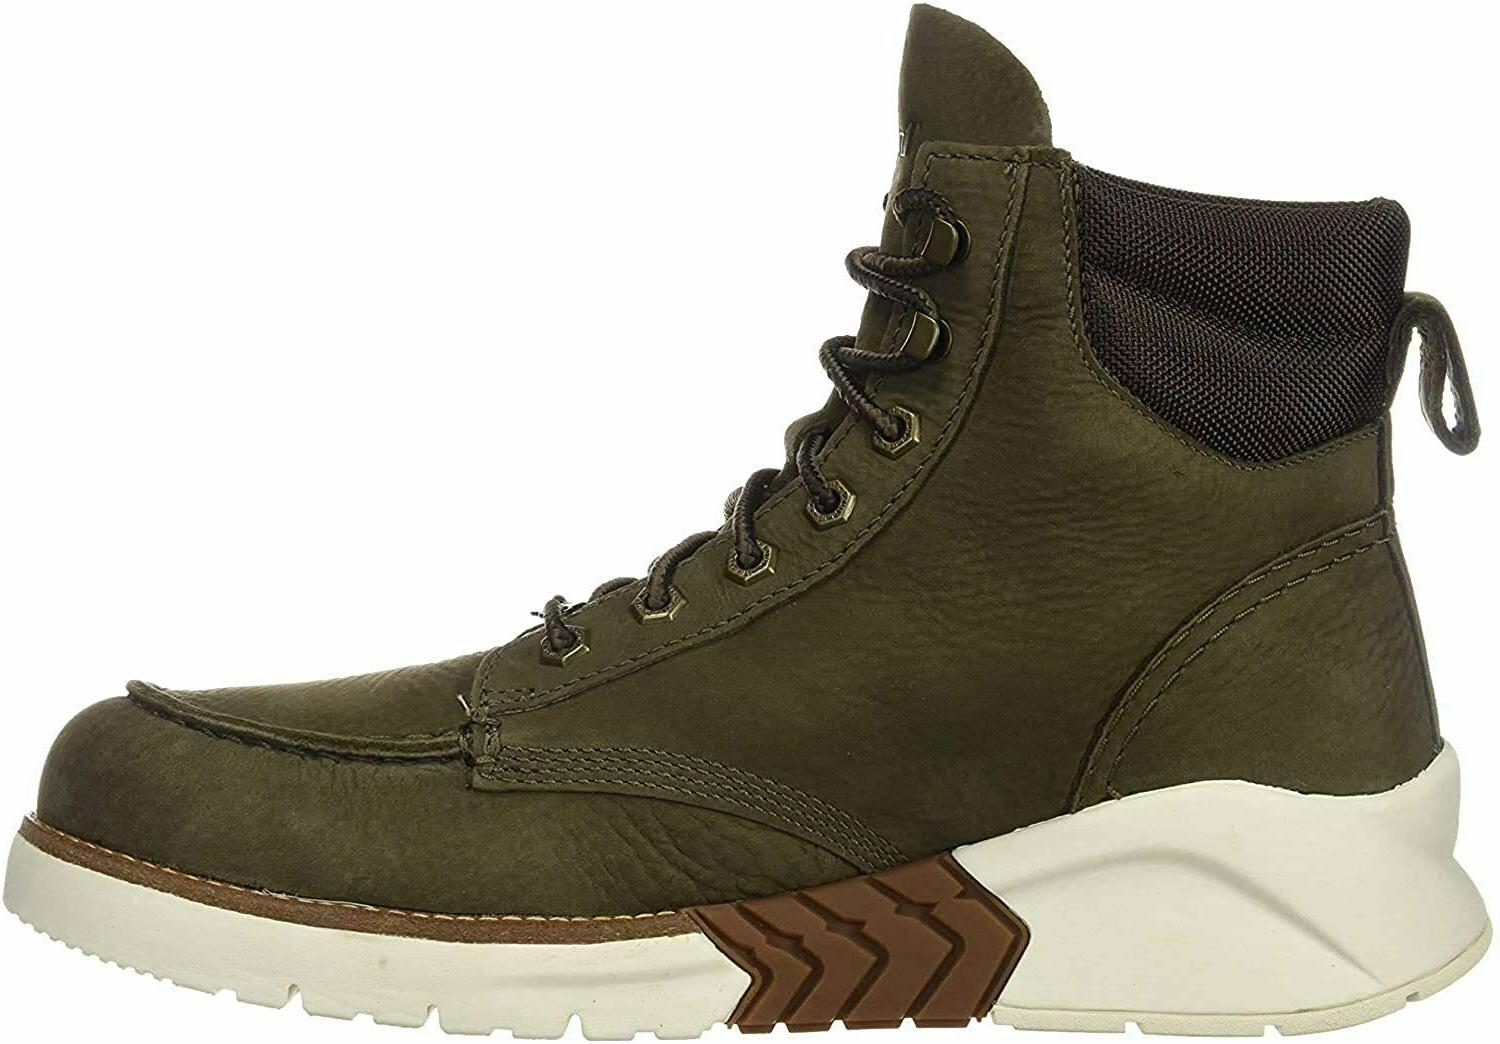 Timberland Men's Shoes MOC lightweight Boots Olive 901